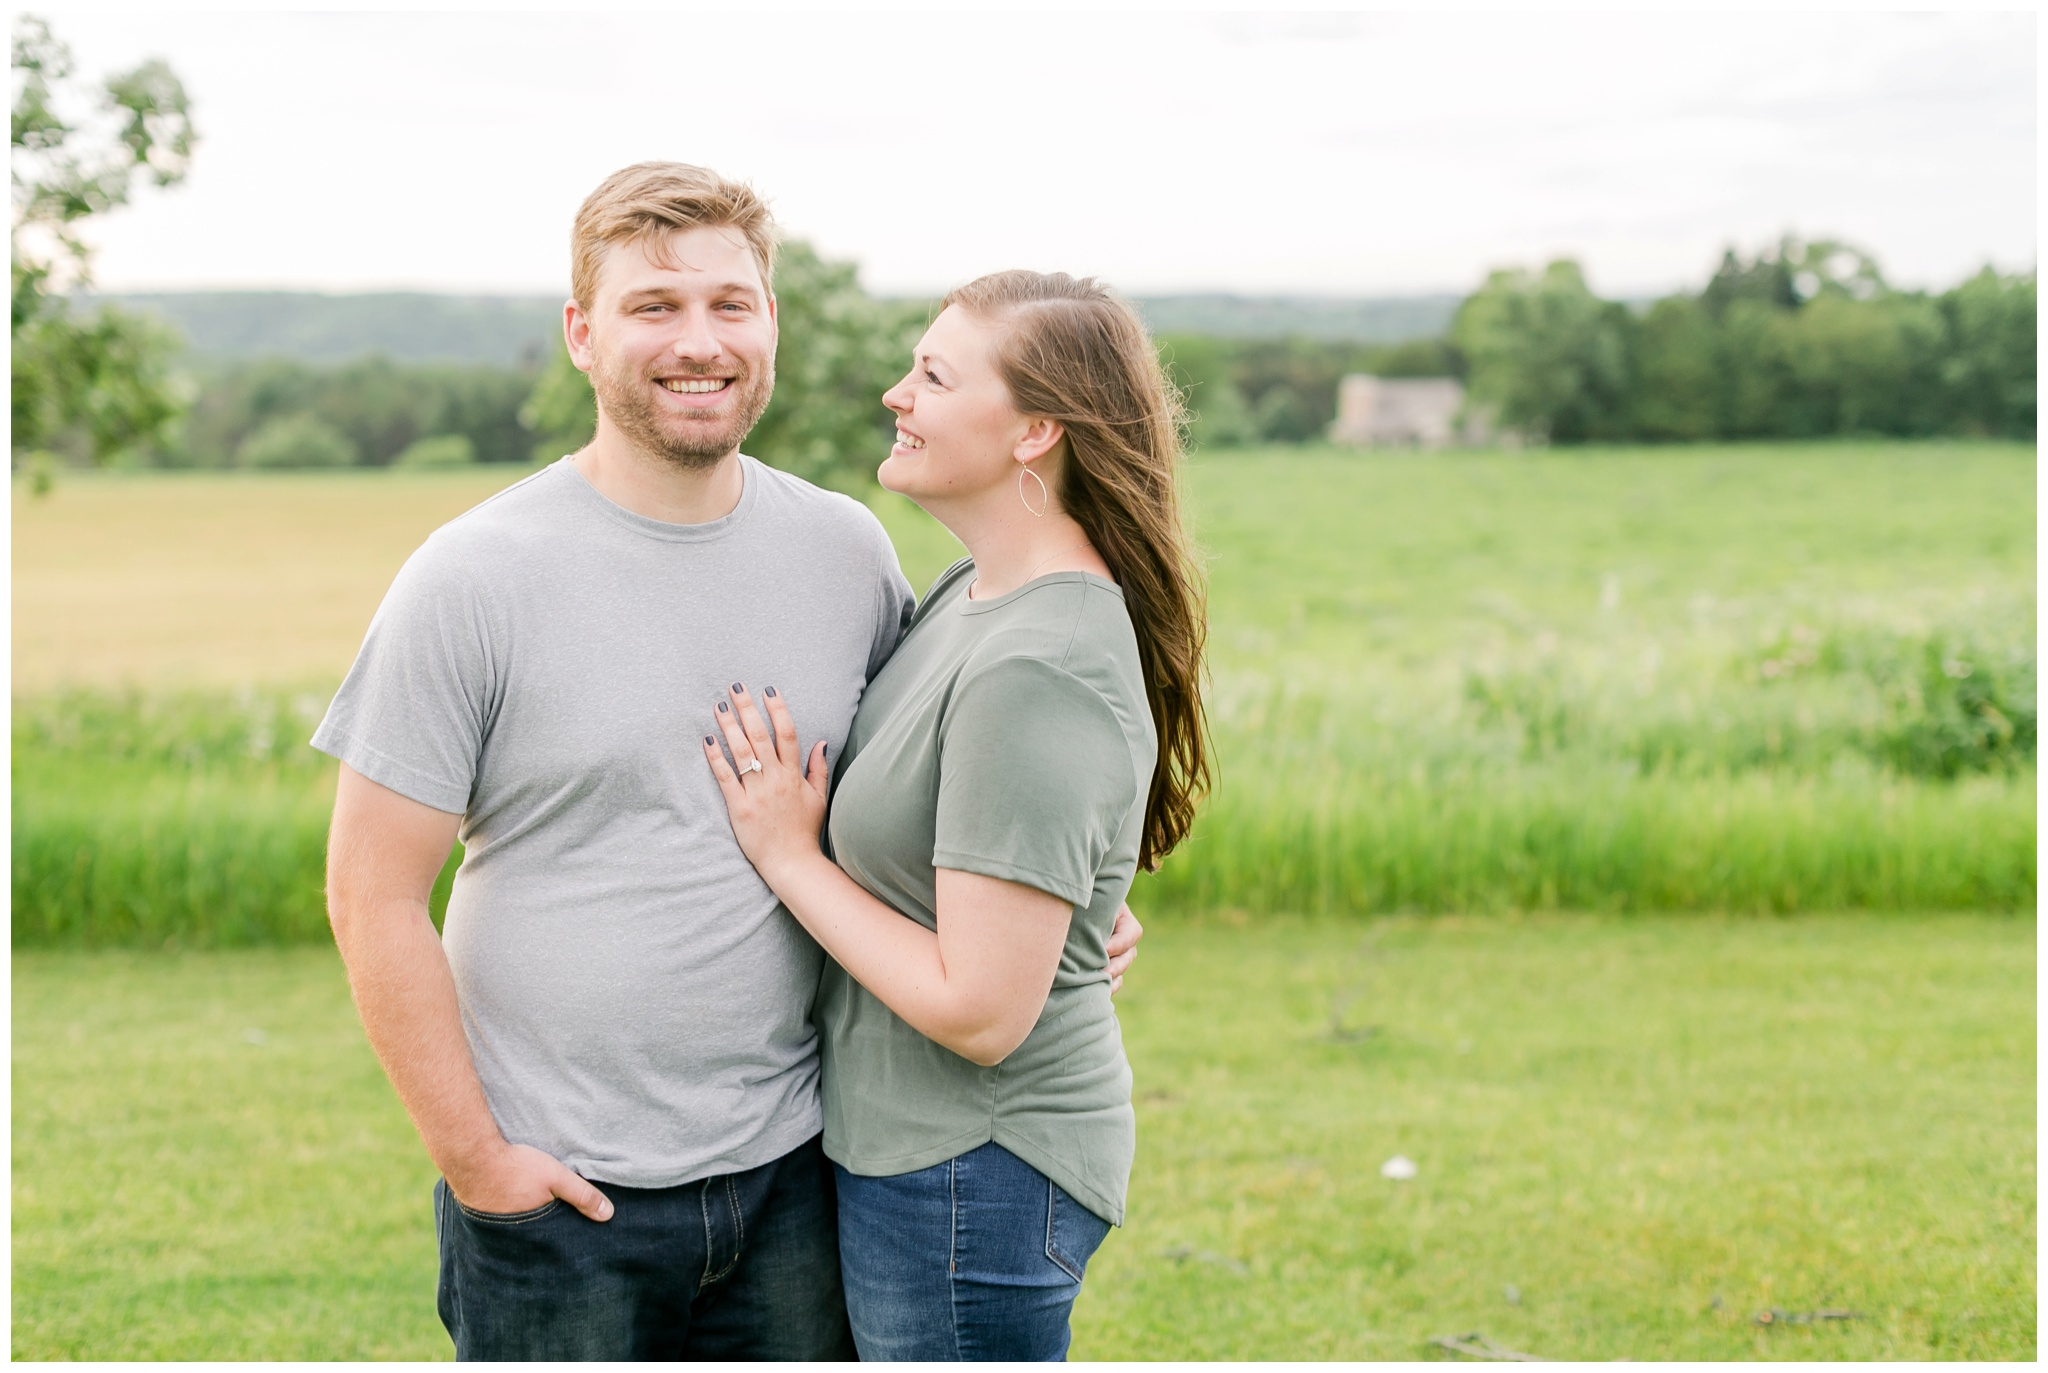 pope_farm_conservancy_engagement_session_madison_wisconsin_engagement_photographers_4144.jpg